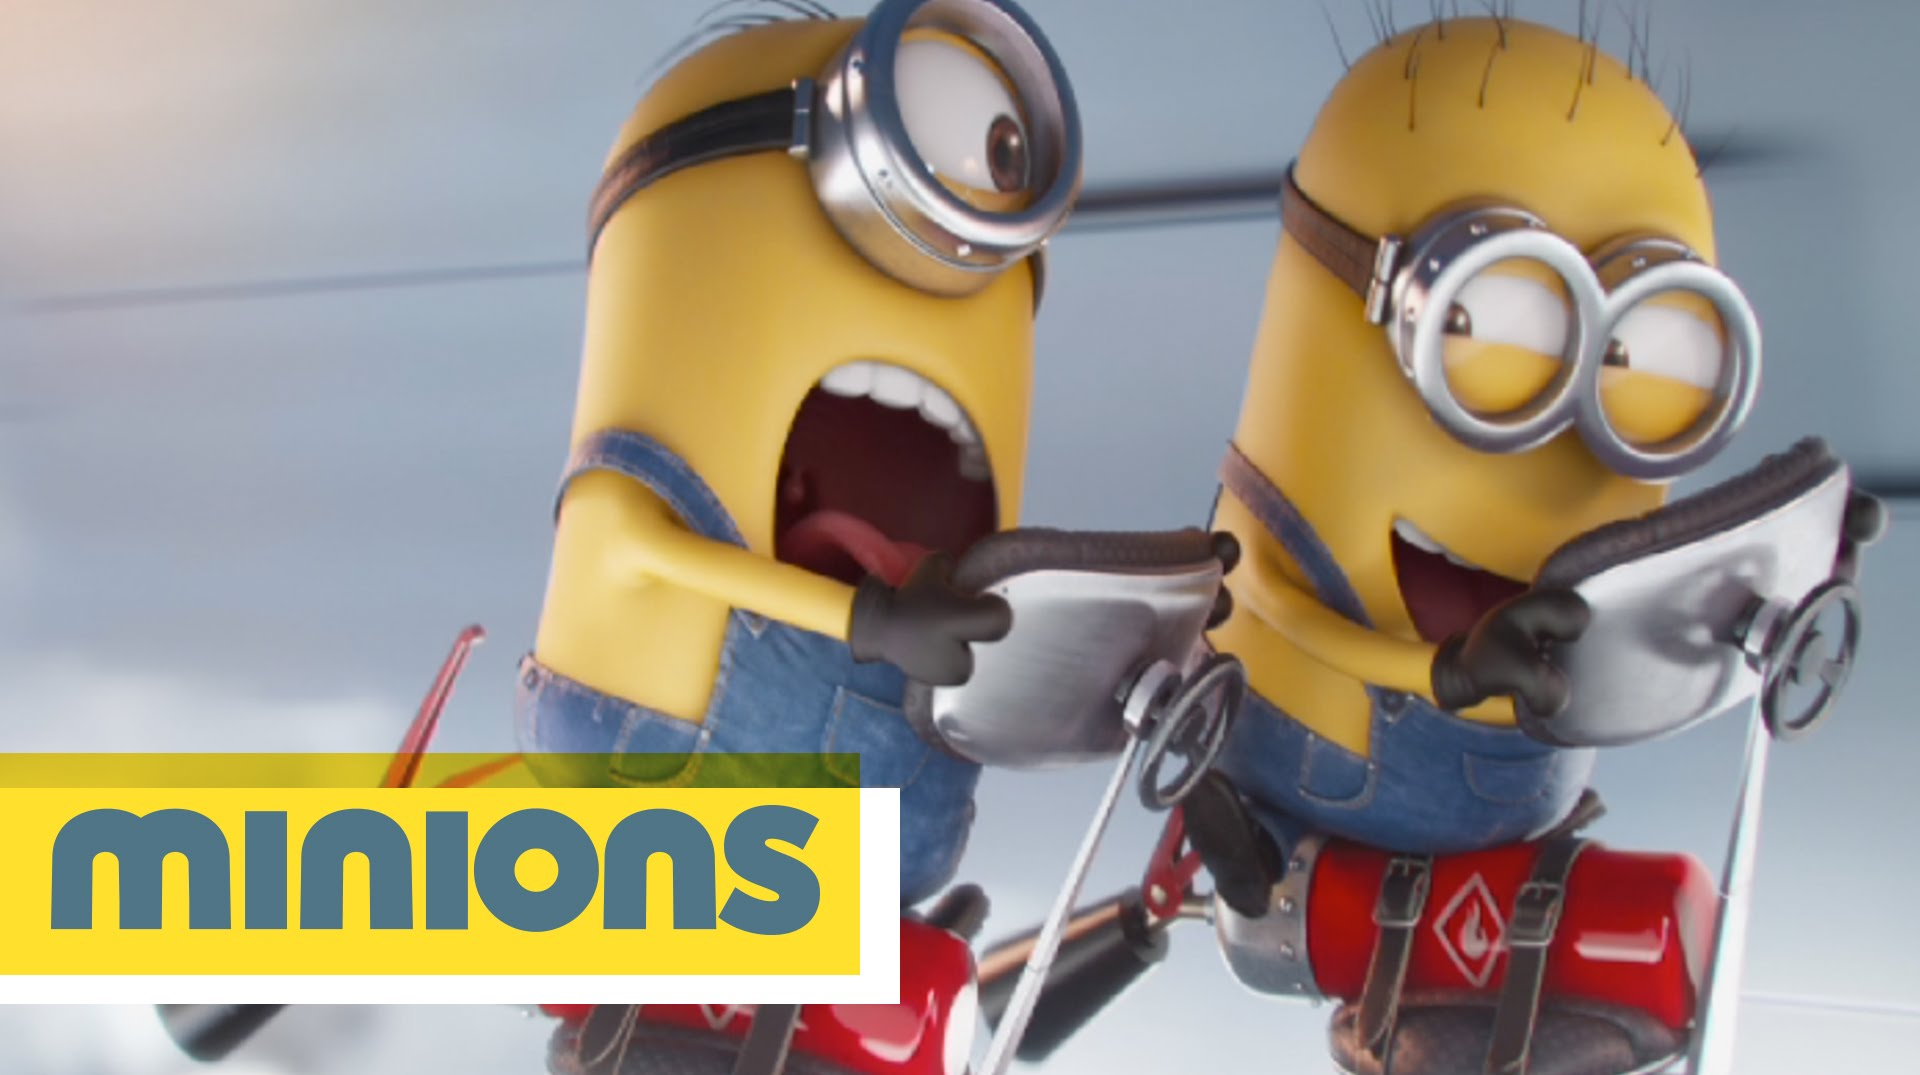 Minions mini-movie 2